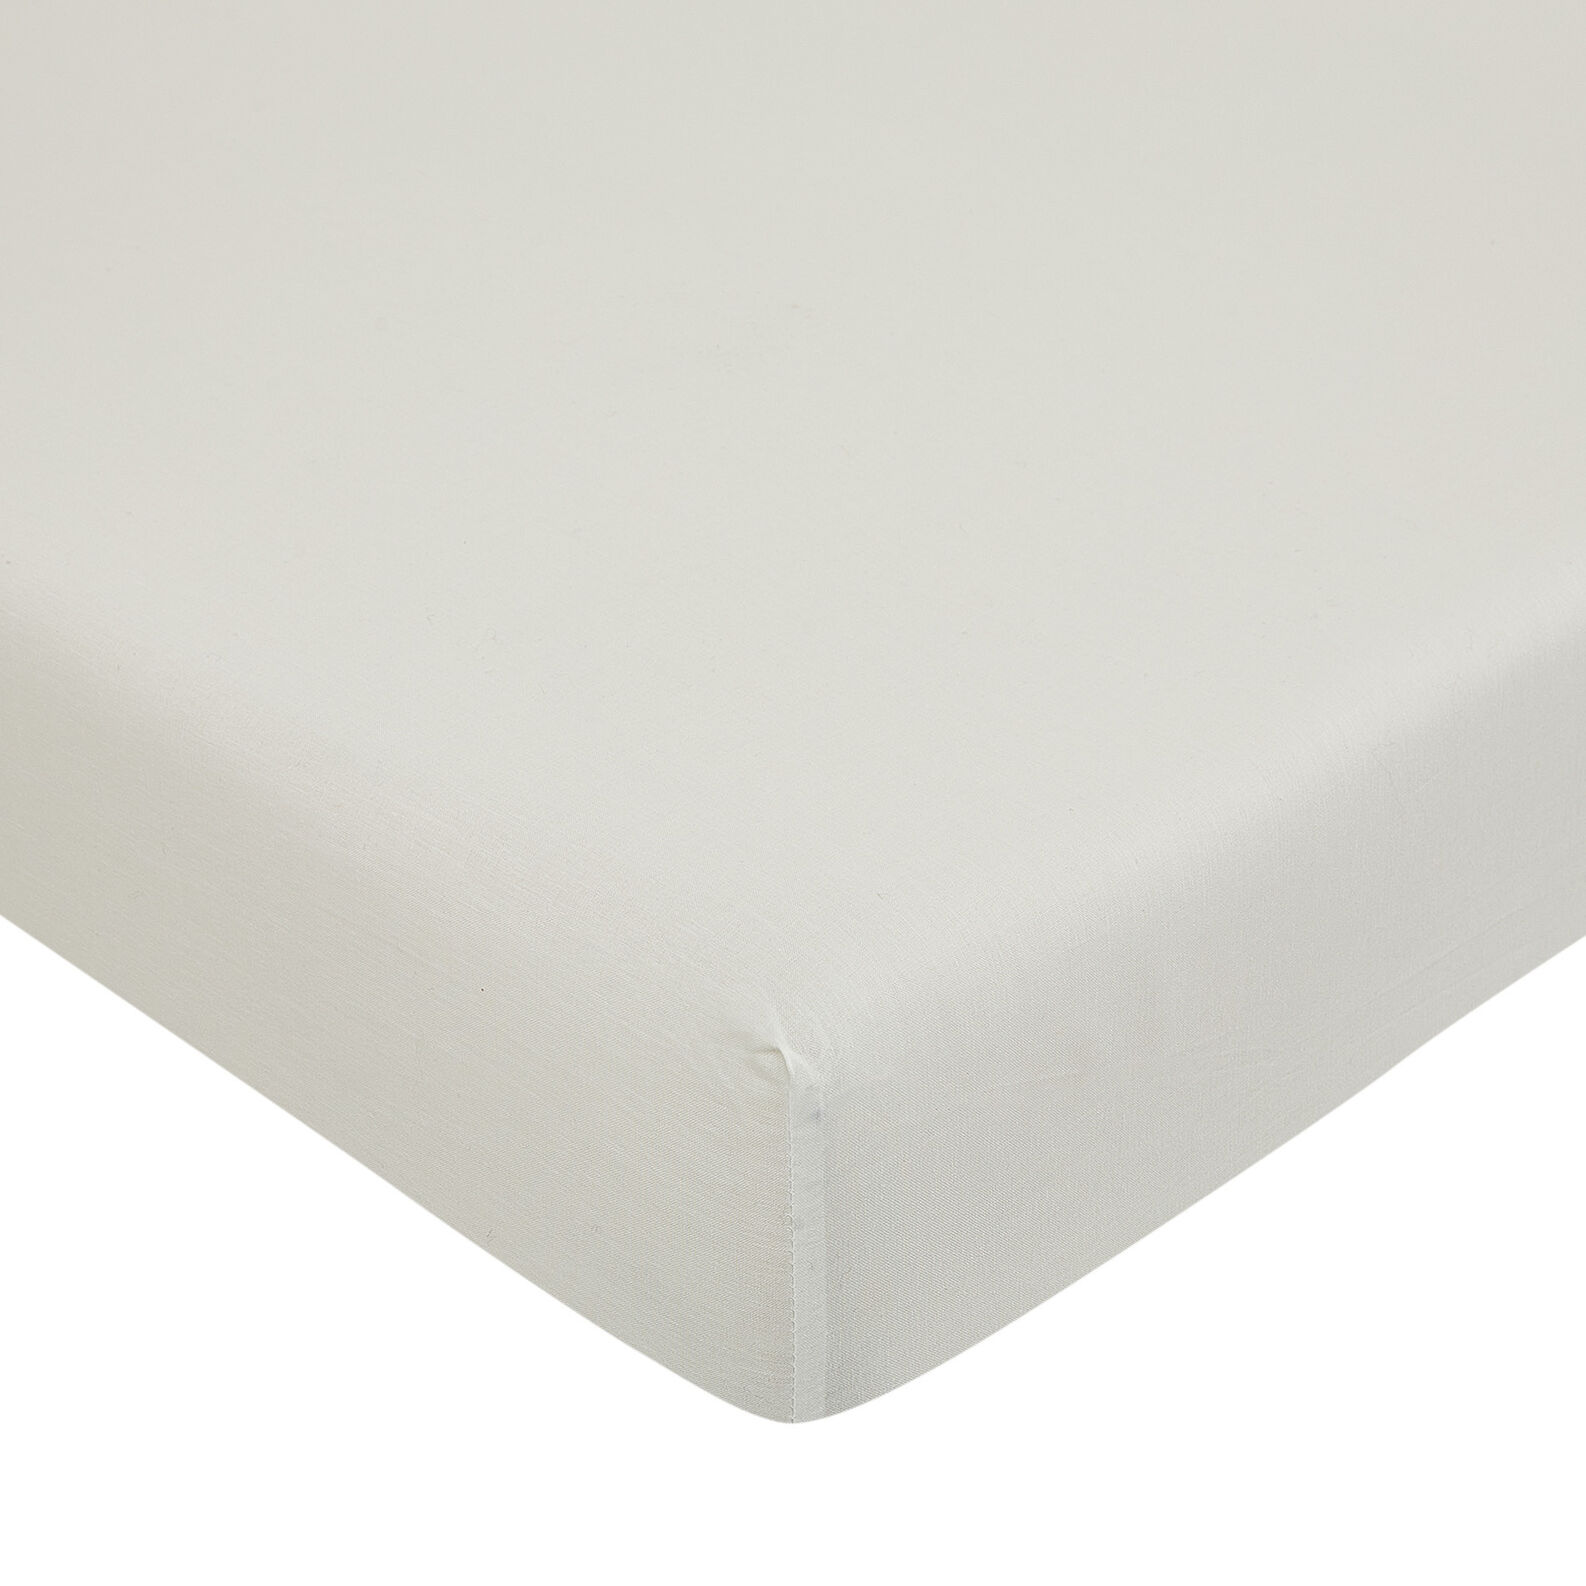 Solid colour fitted sheet in 100% cotton